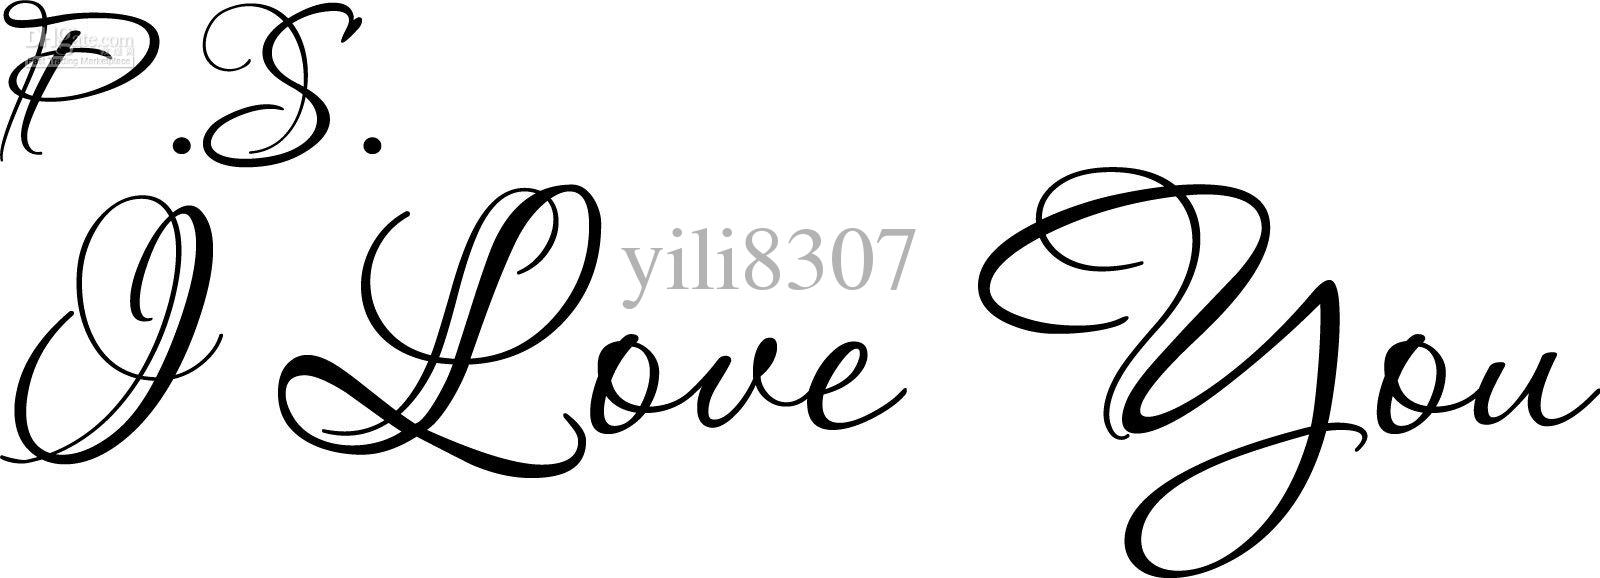 9 I Love You In Calligraphy Script Font Images - Fancy ...  Love Calligraphy Font